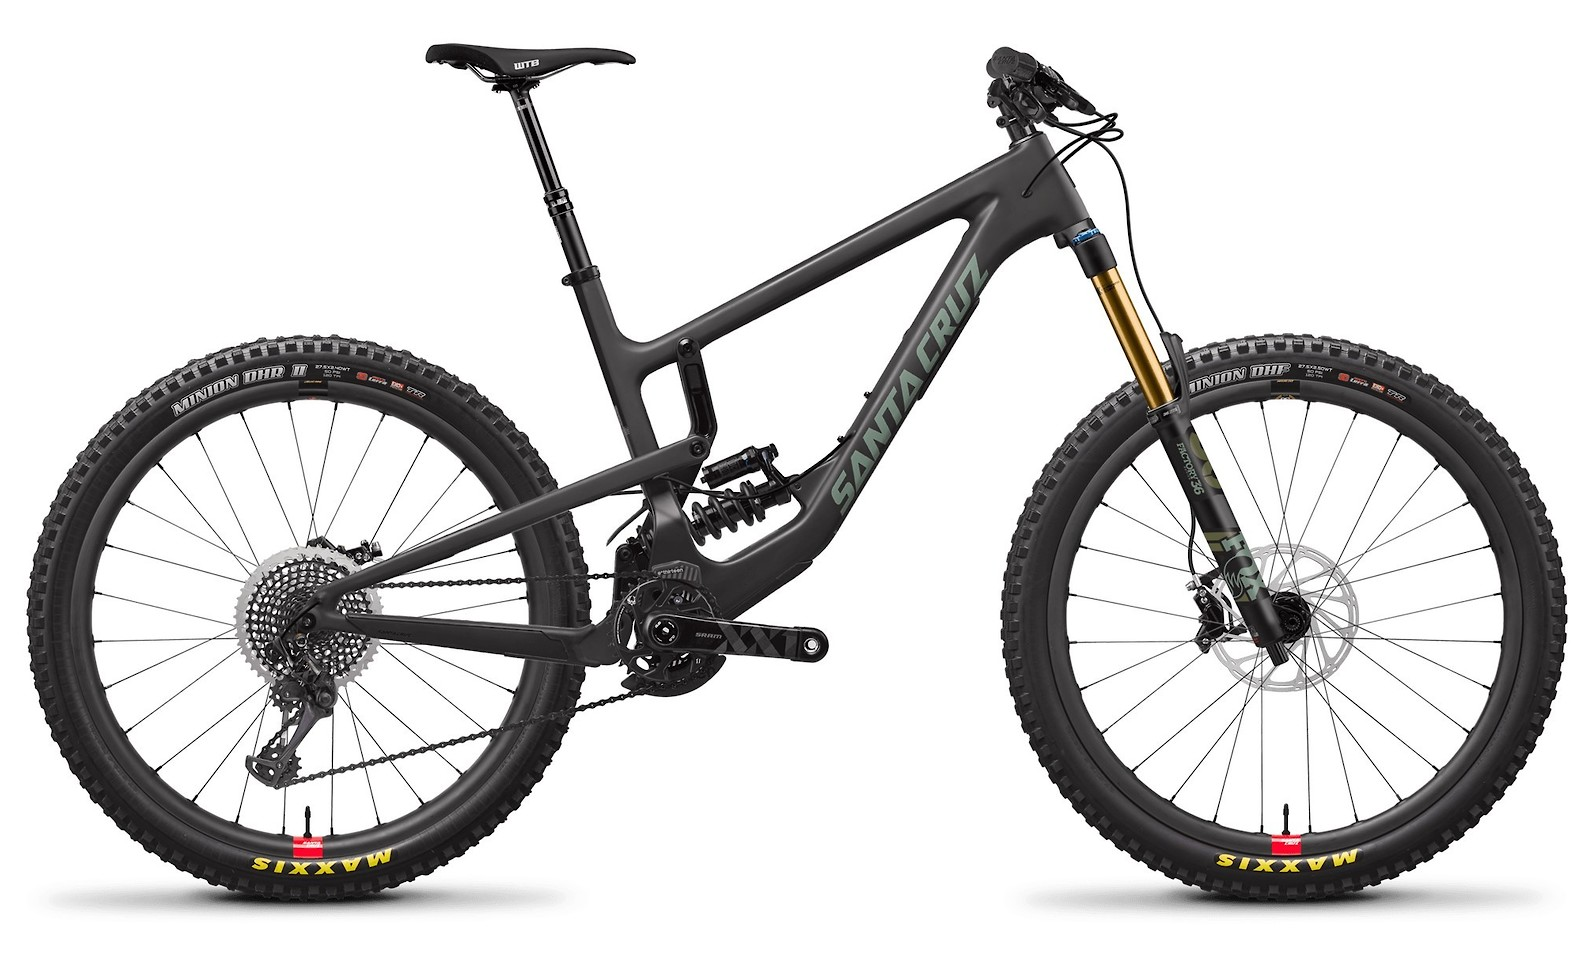 Nomad Carbon CC XX1 Reserve Carbon Olive with RockShox SuperDeluxe RCT Coil